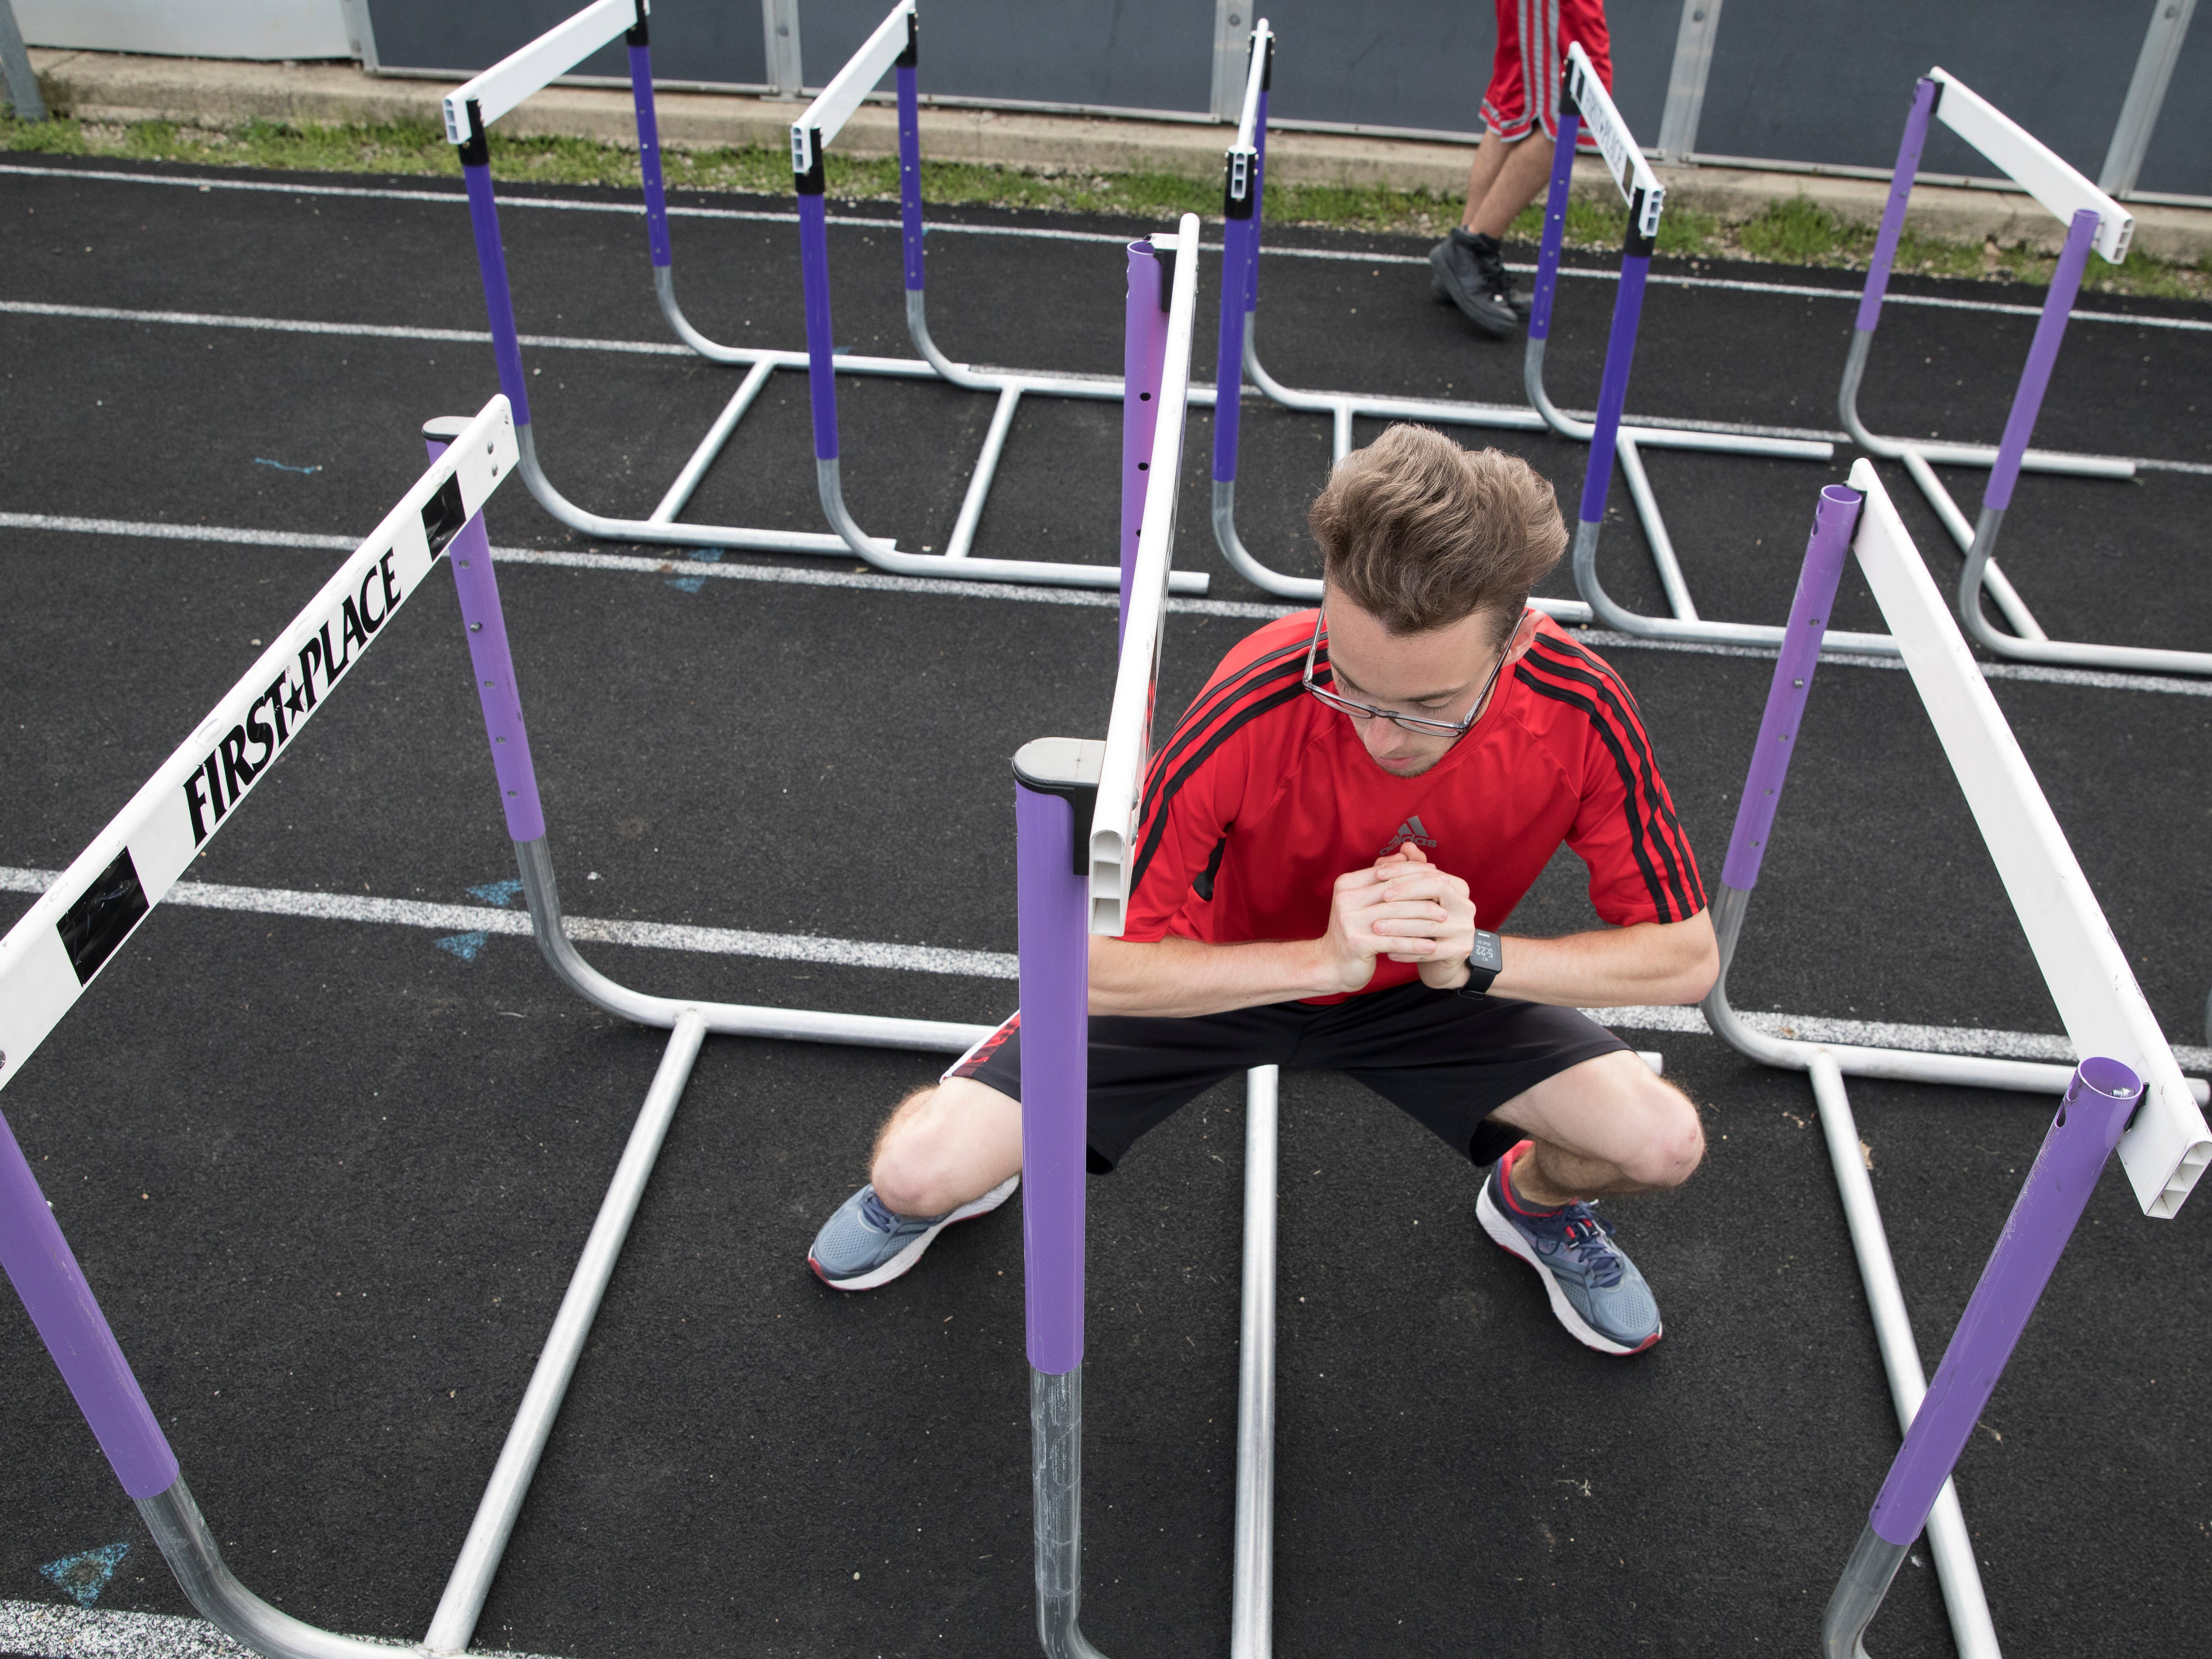 With the aid of hurdles, Eric Hacker does stretching exercises to improve his mobility and performance during practice at Unioto High School.